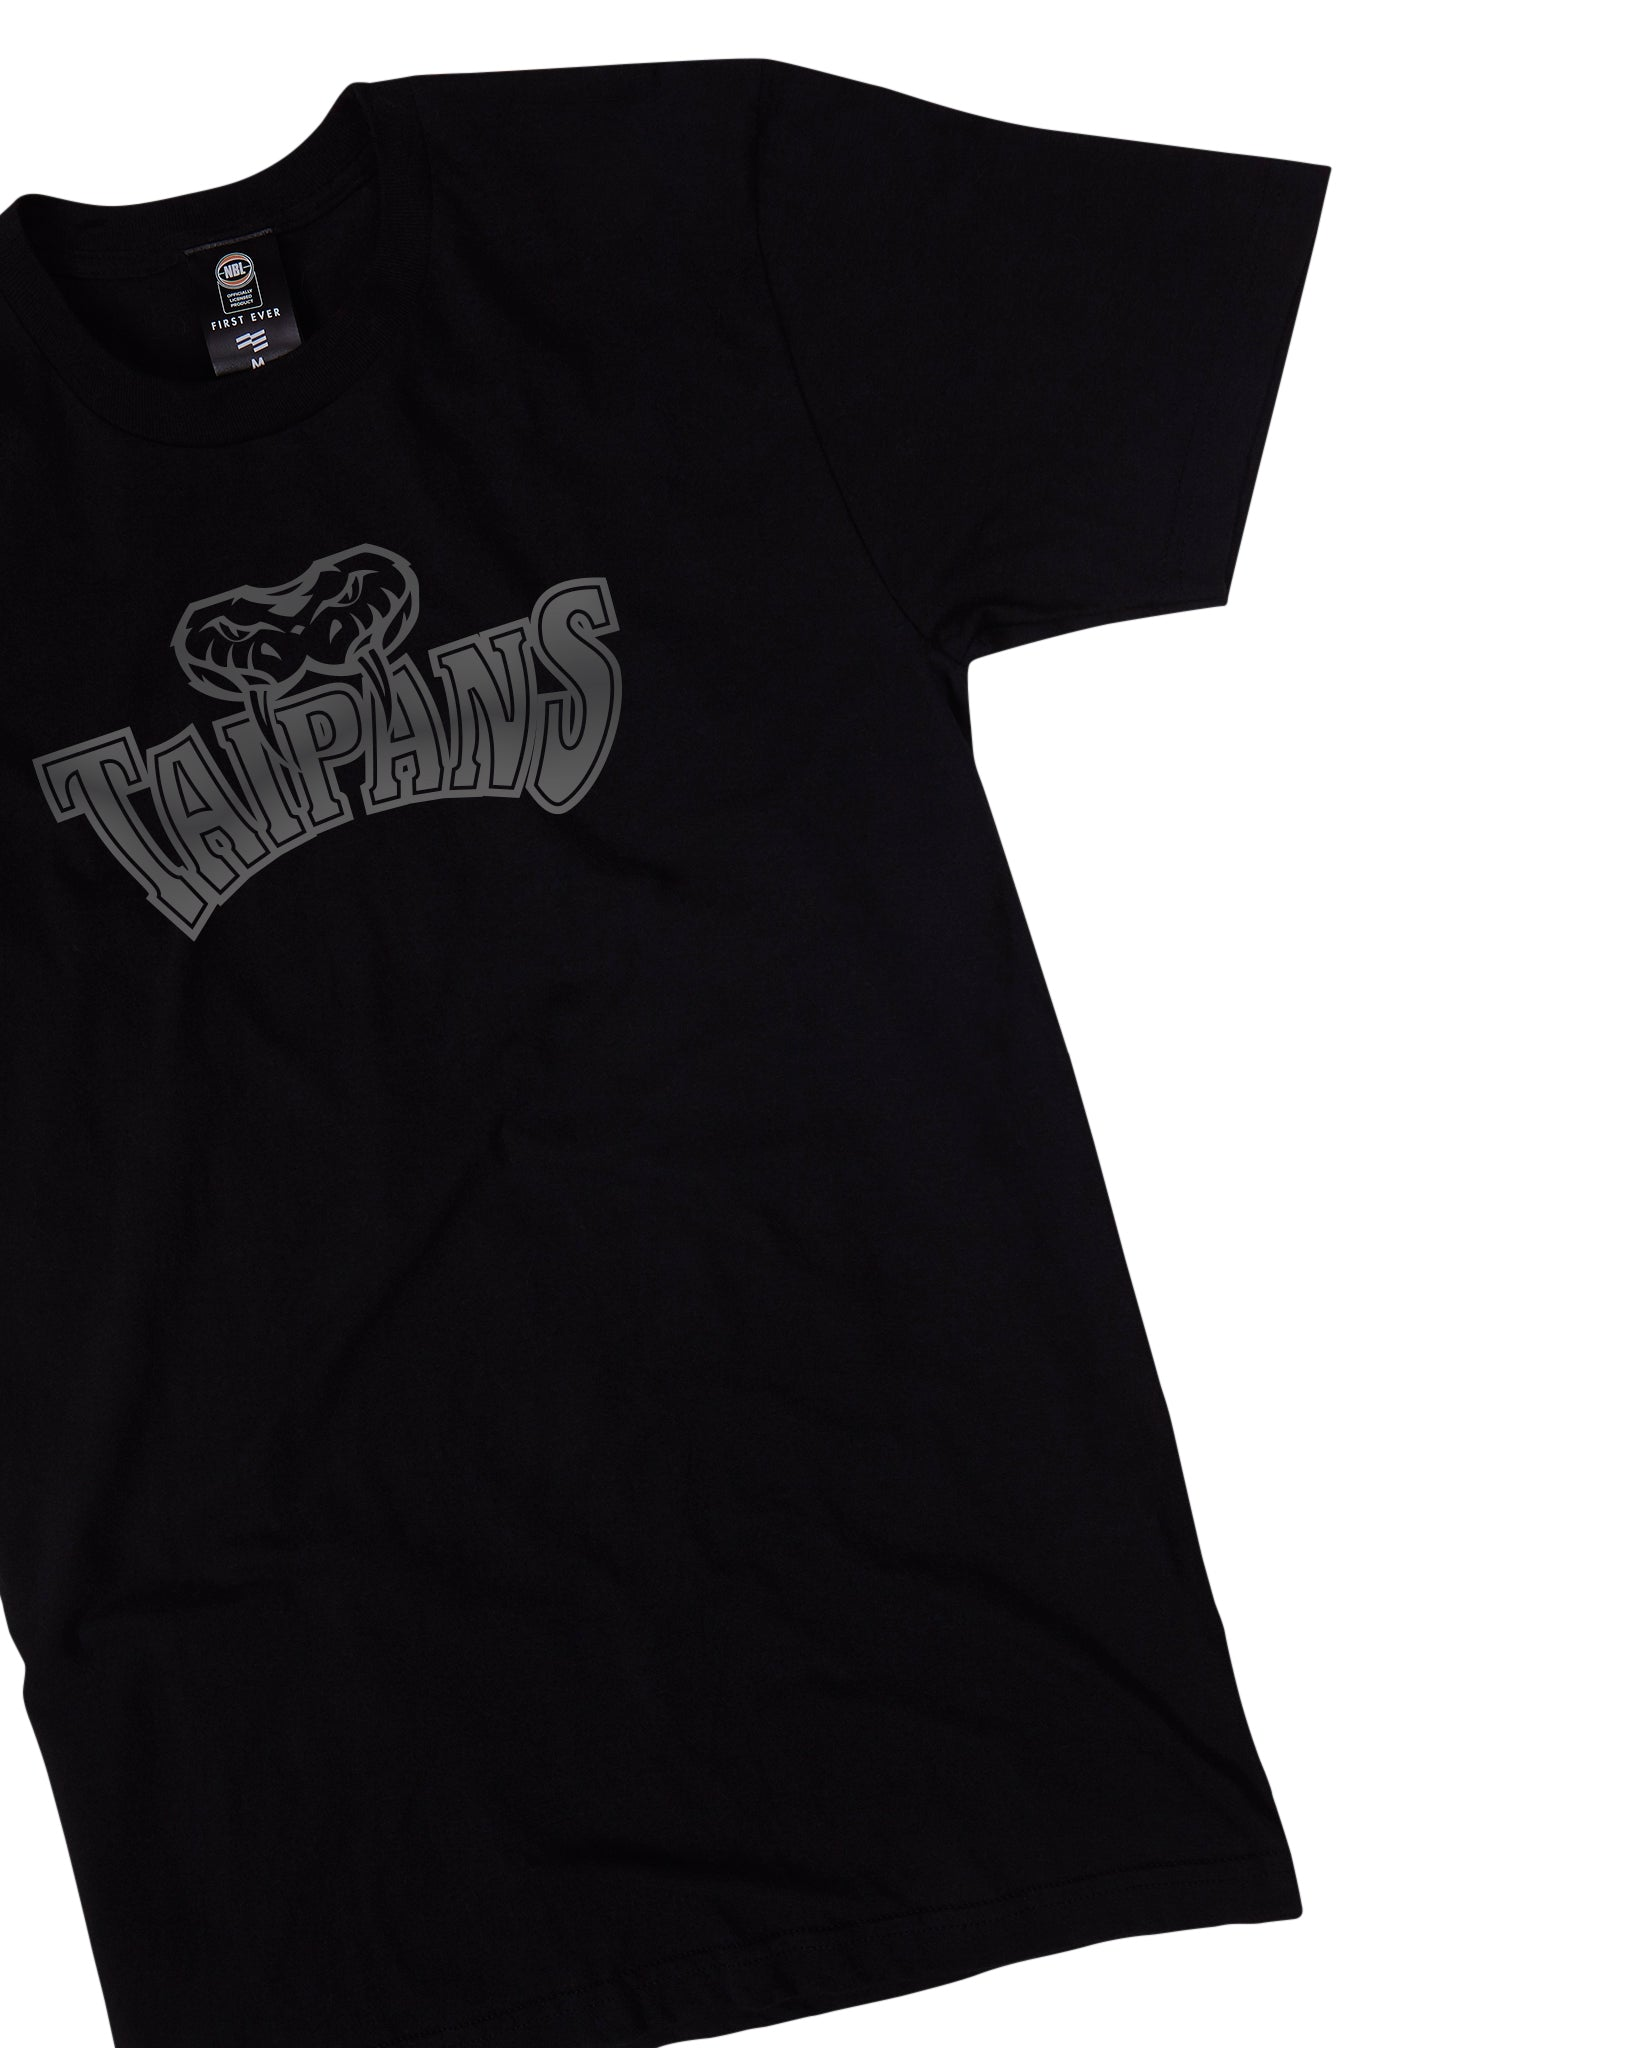 Cairns Taipans 19/20 Blackout Tee